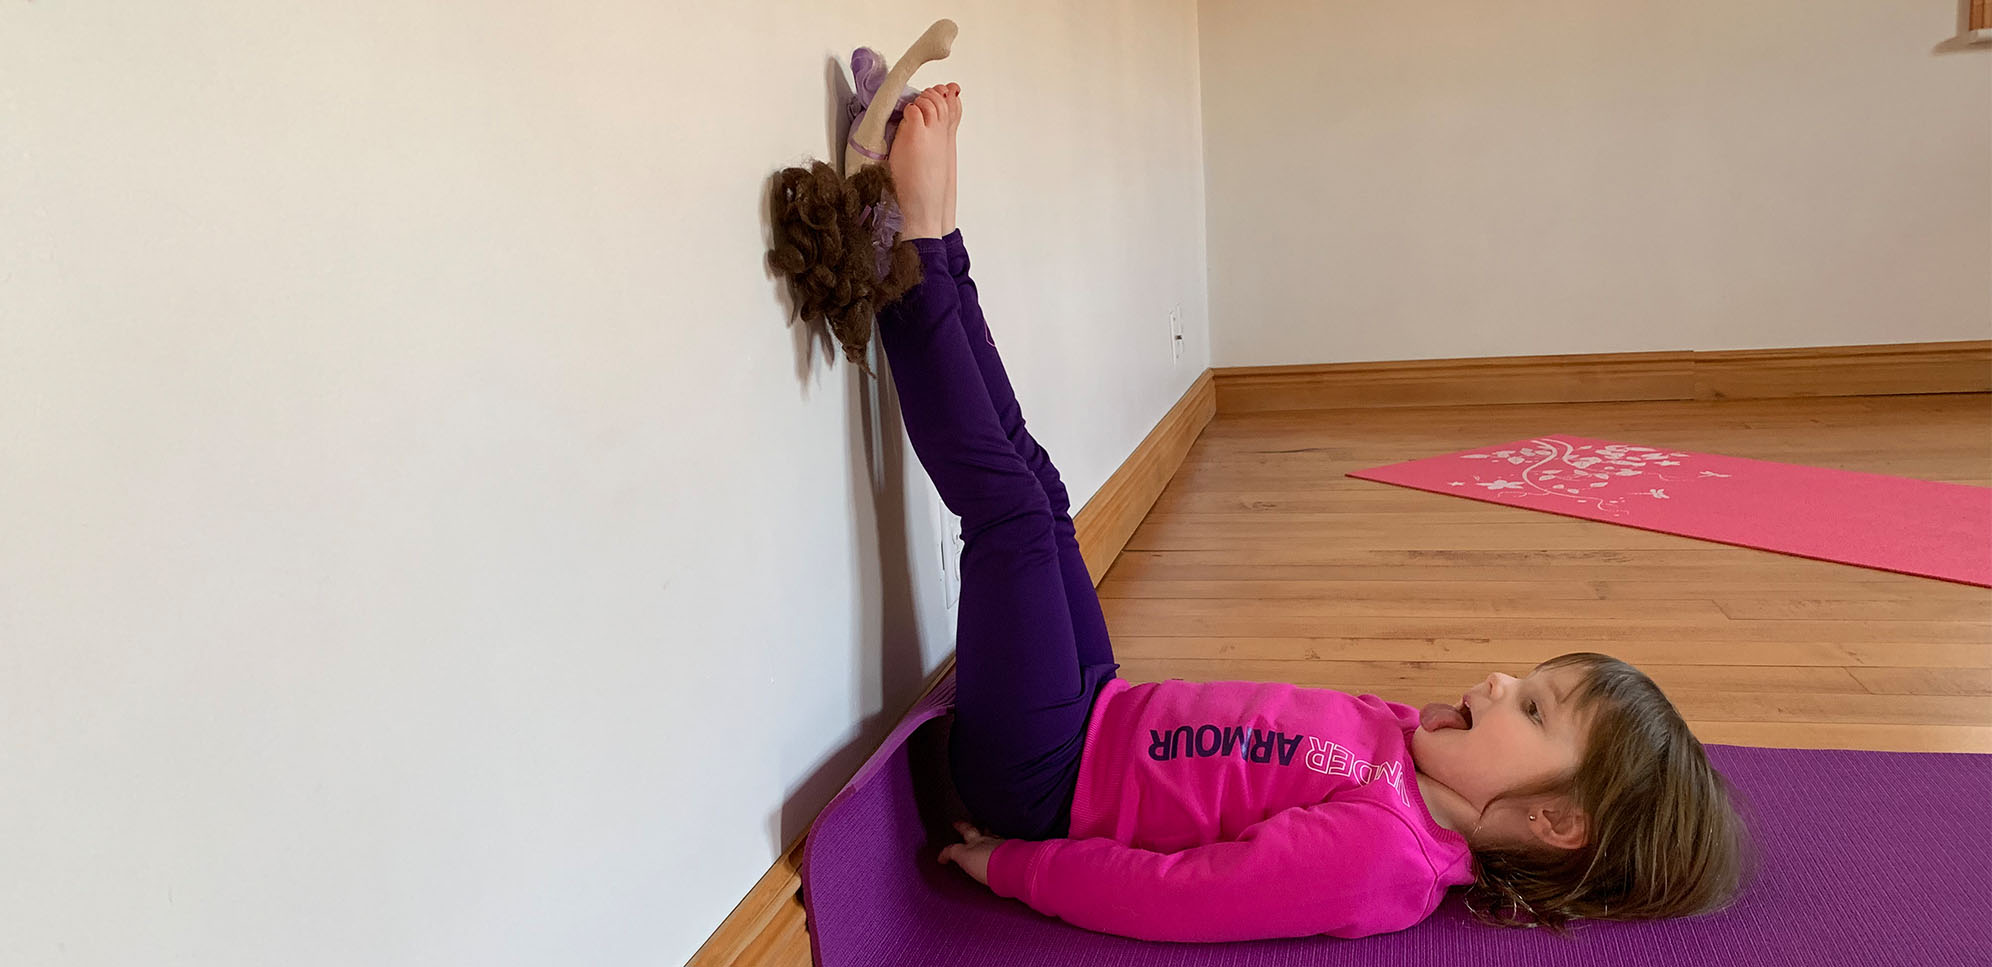 NGY with Cindy Lesher Yoga